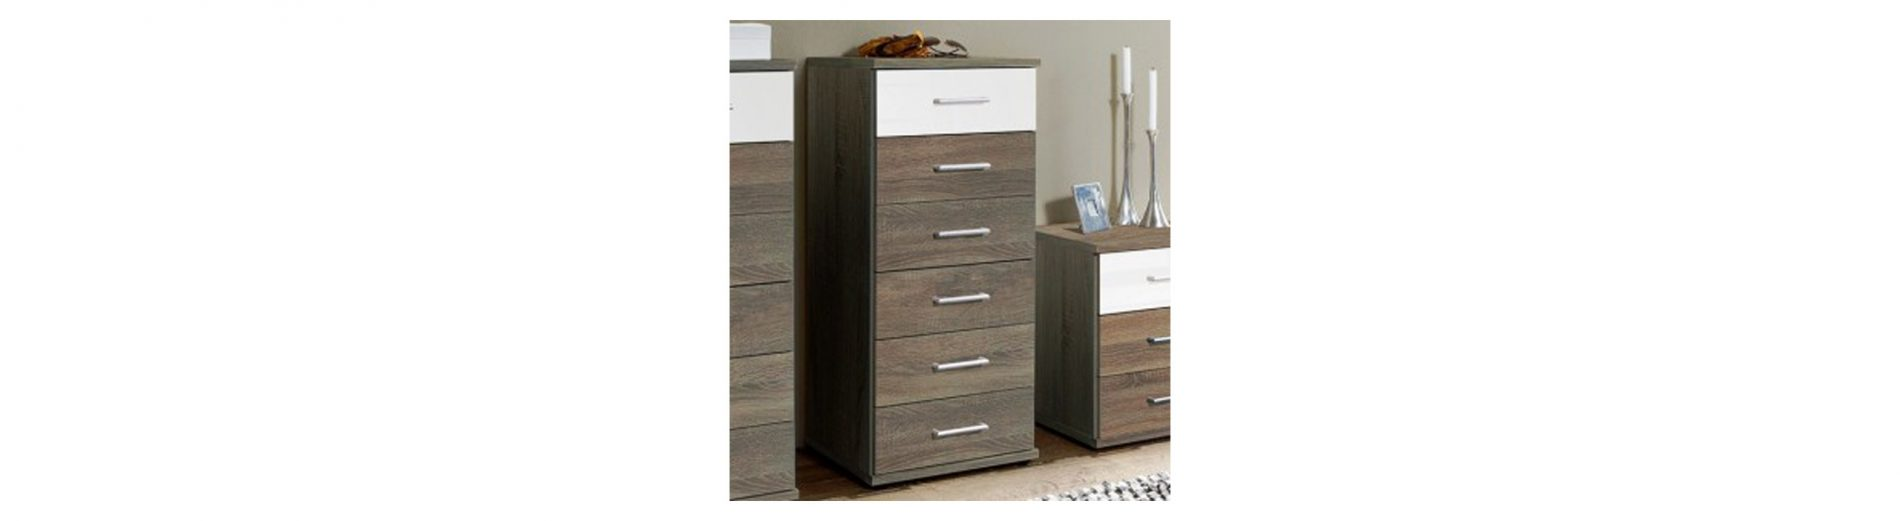 Chest of drawers are important pieces of furniture for Bedroom